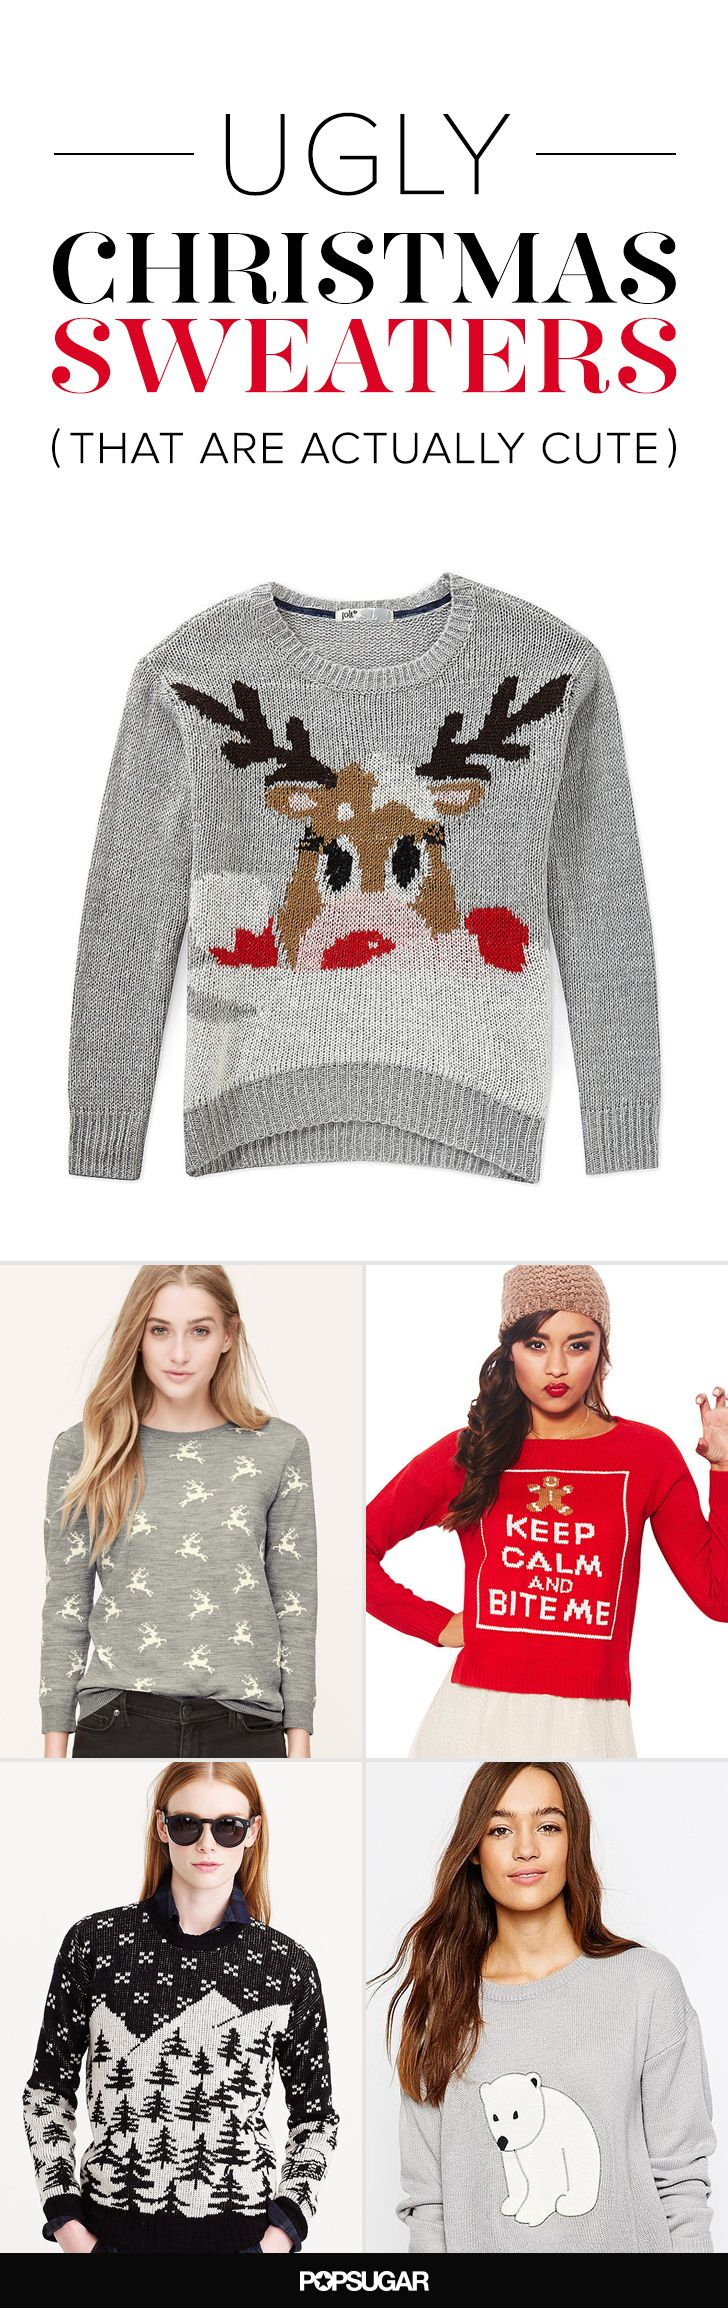 These ugly Christmas sweaters are totally cute!